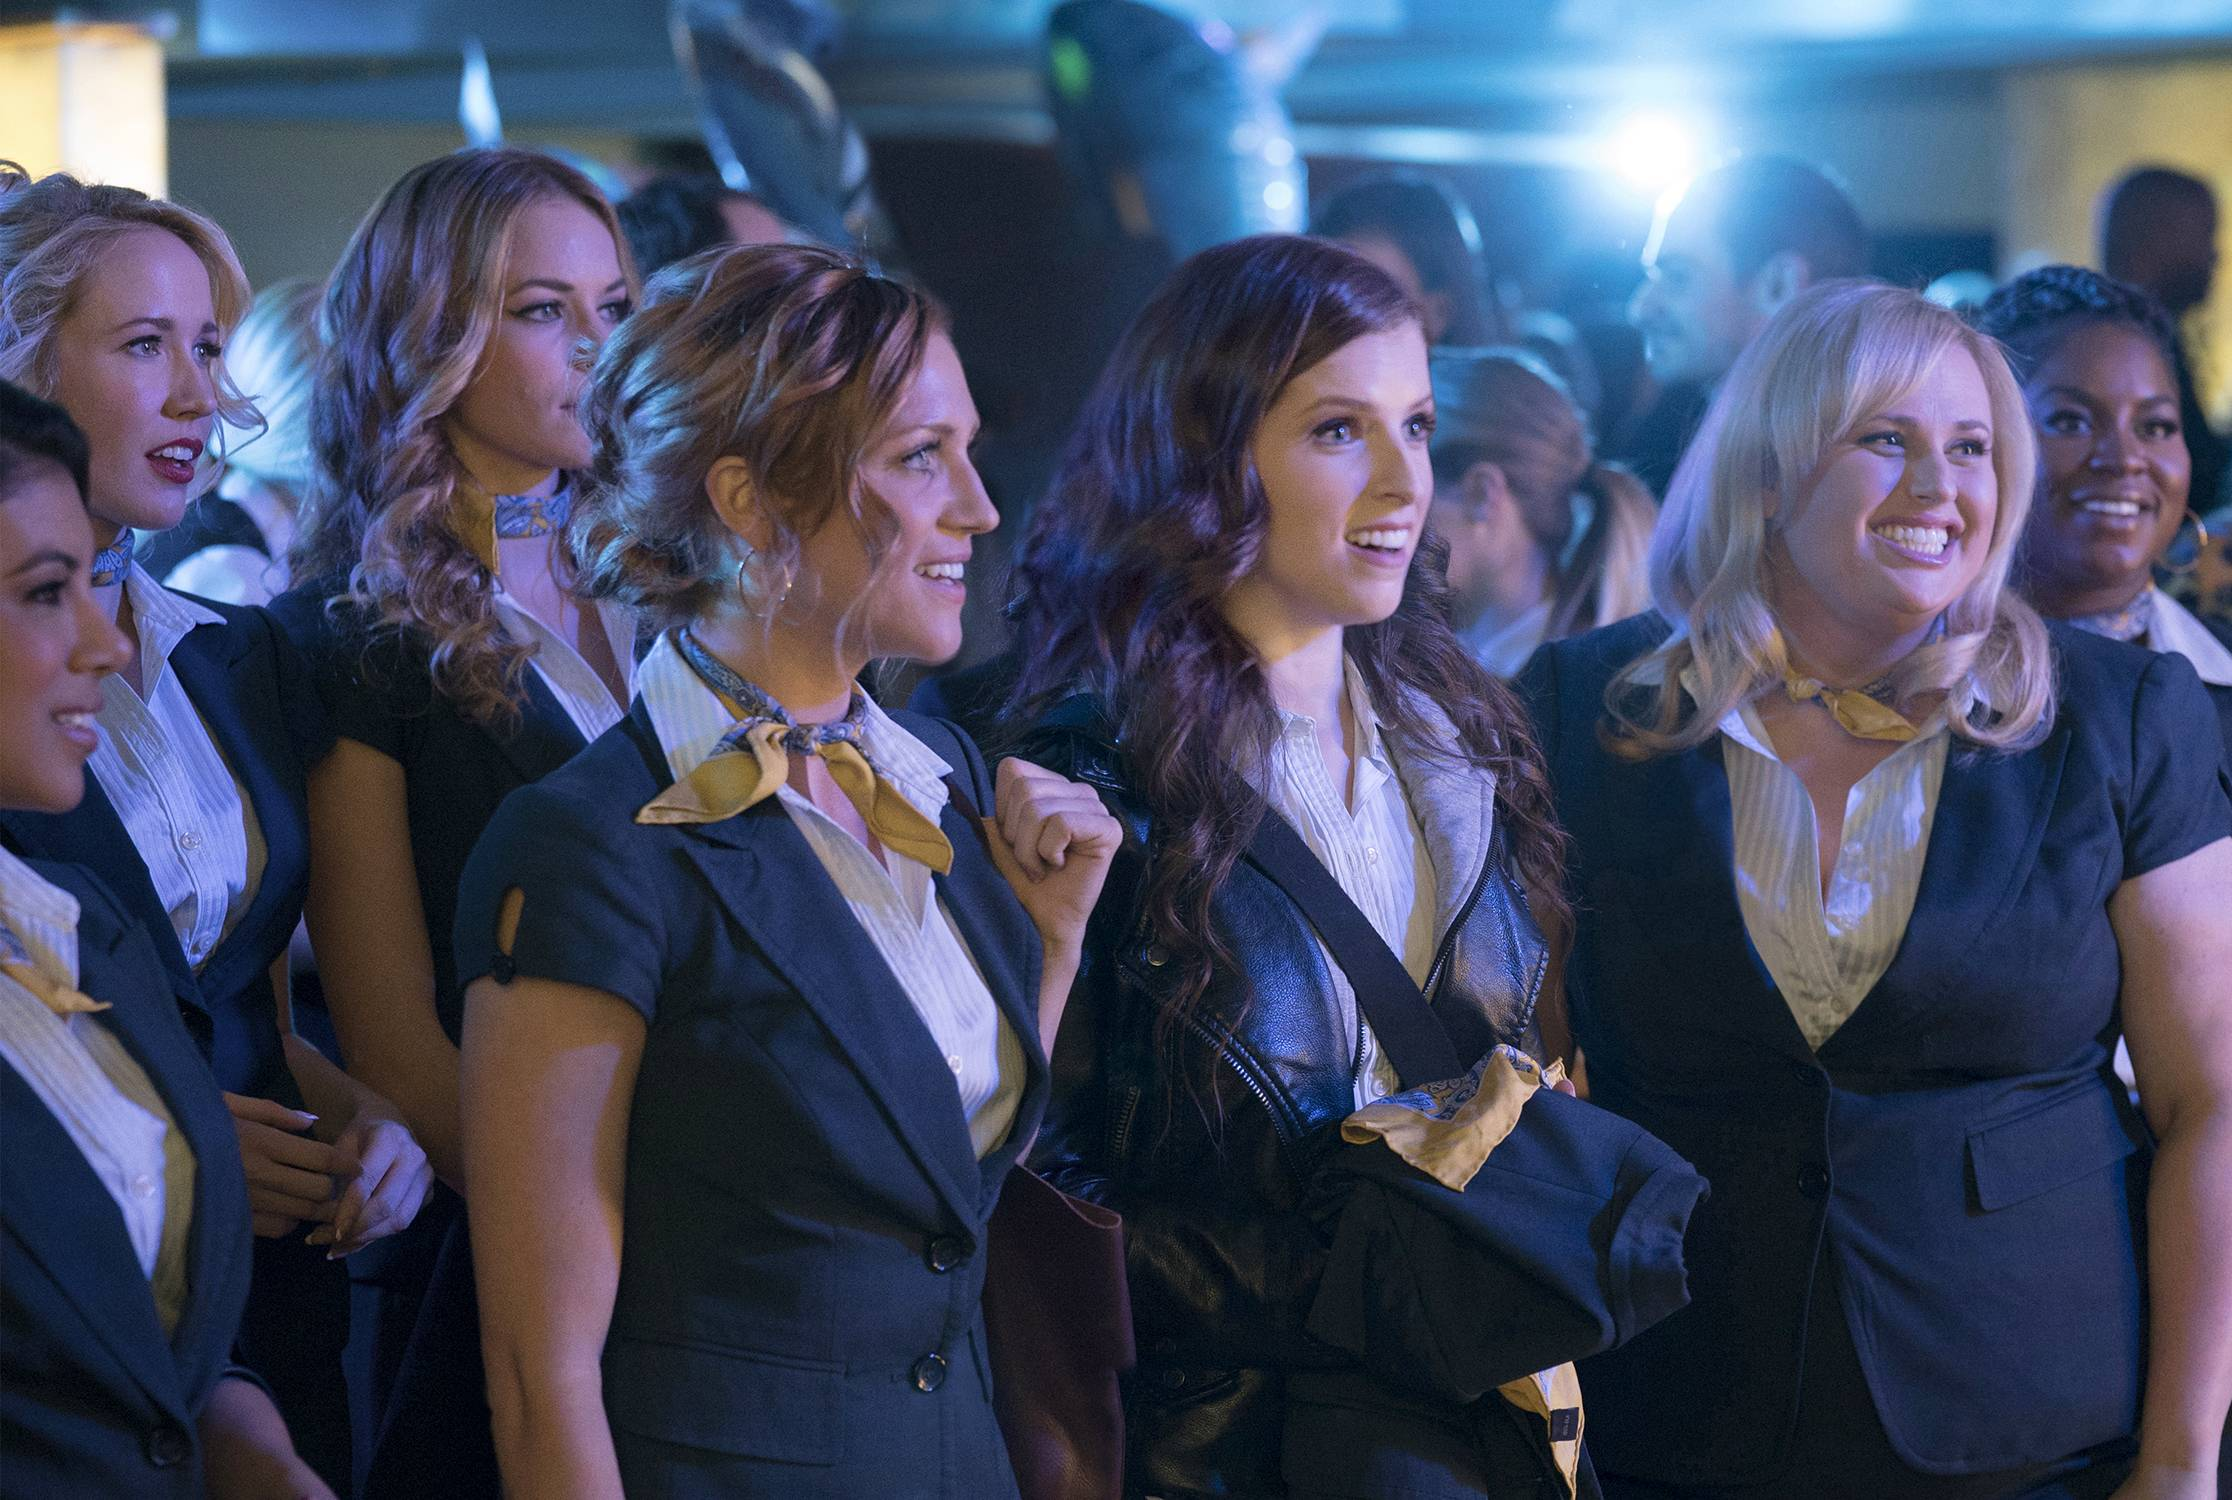 "Flo (Chrissie Fit), left, Aubrey (Anna Camp), Stacie (Alexis Knapp), Chloe (Brittany Snow), Beca (Anna Kendrick), Fat Amy (Rebel Wilson) and Cynthia Rose (Ester Dean) return in ""Pitch Perfect 3,"" directed by Trish Sie."